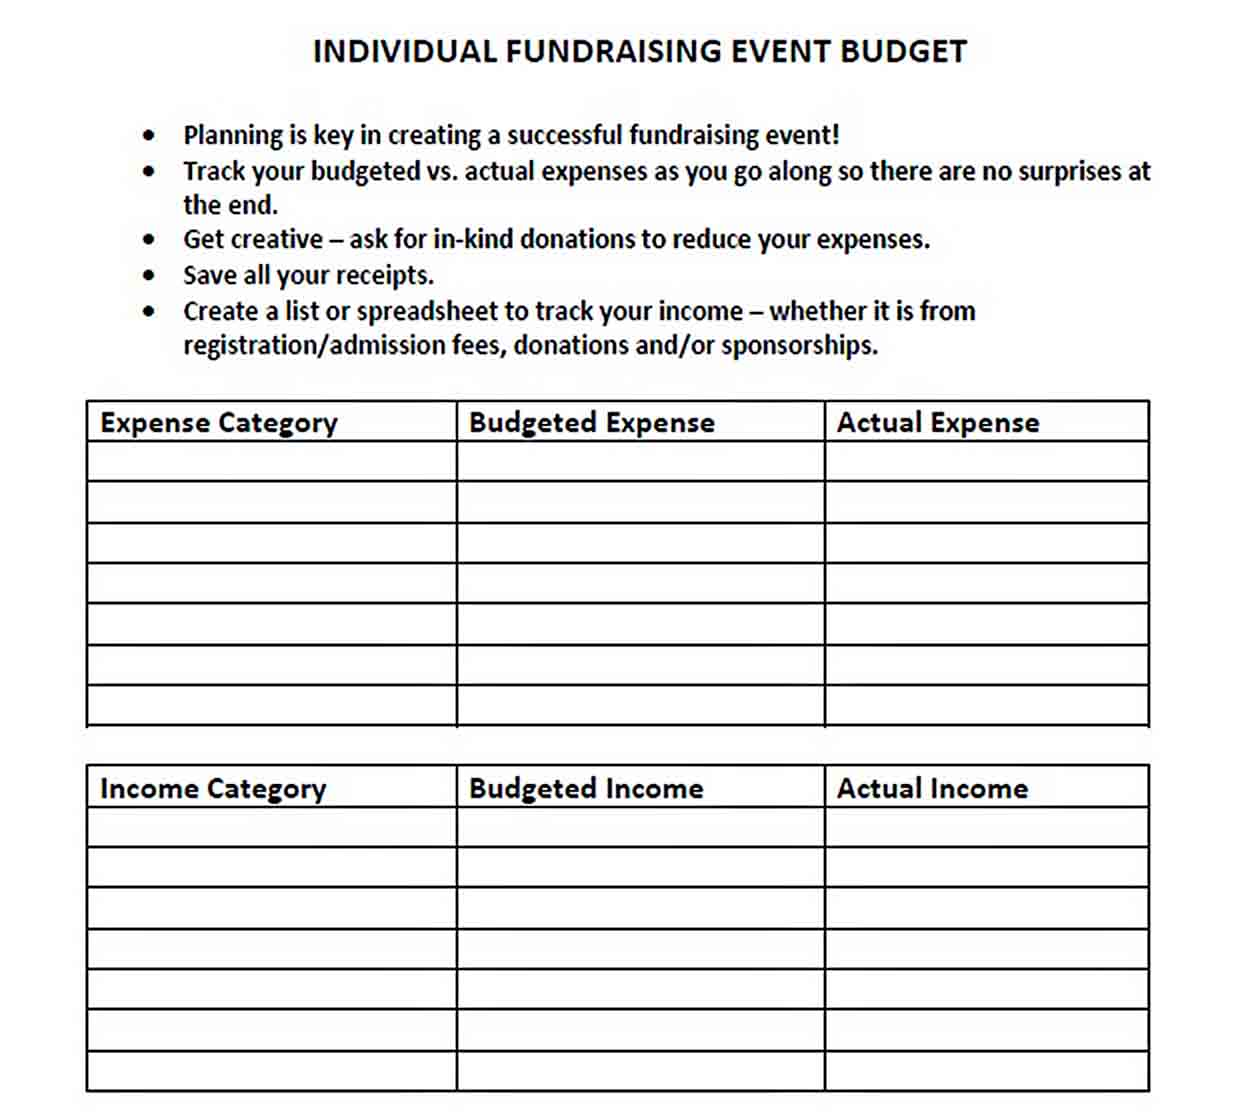 Fundraising Event Budget Template sample